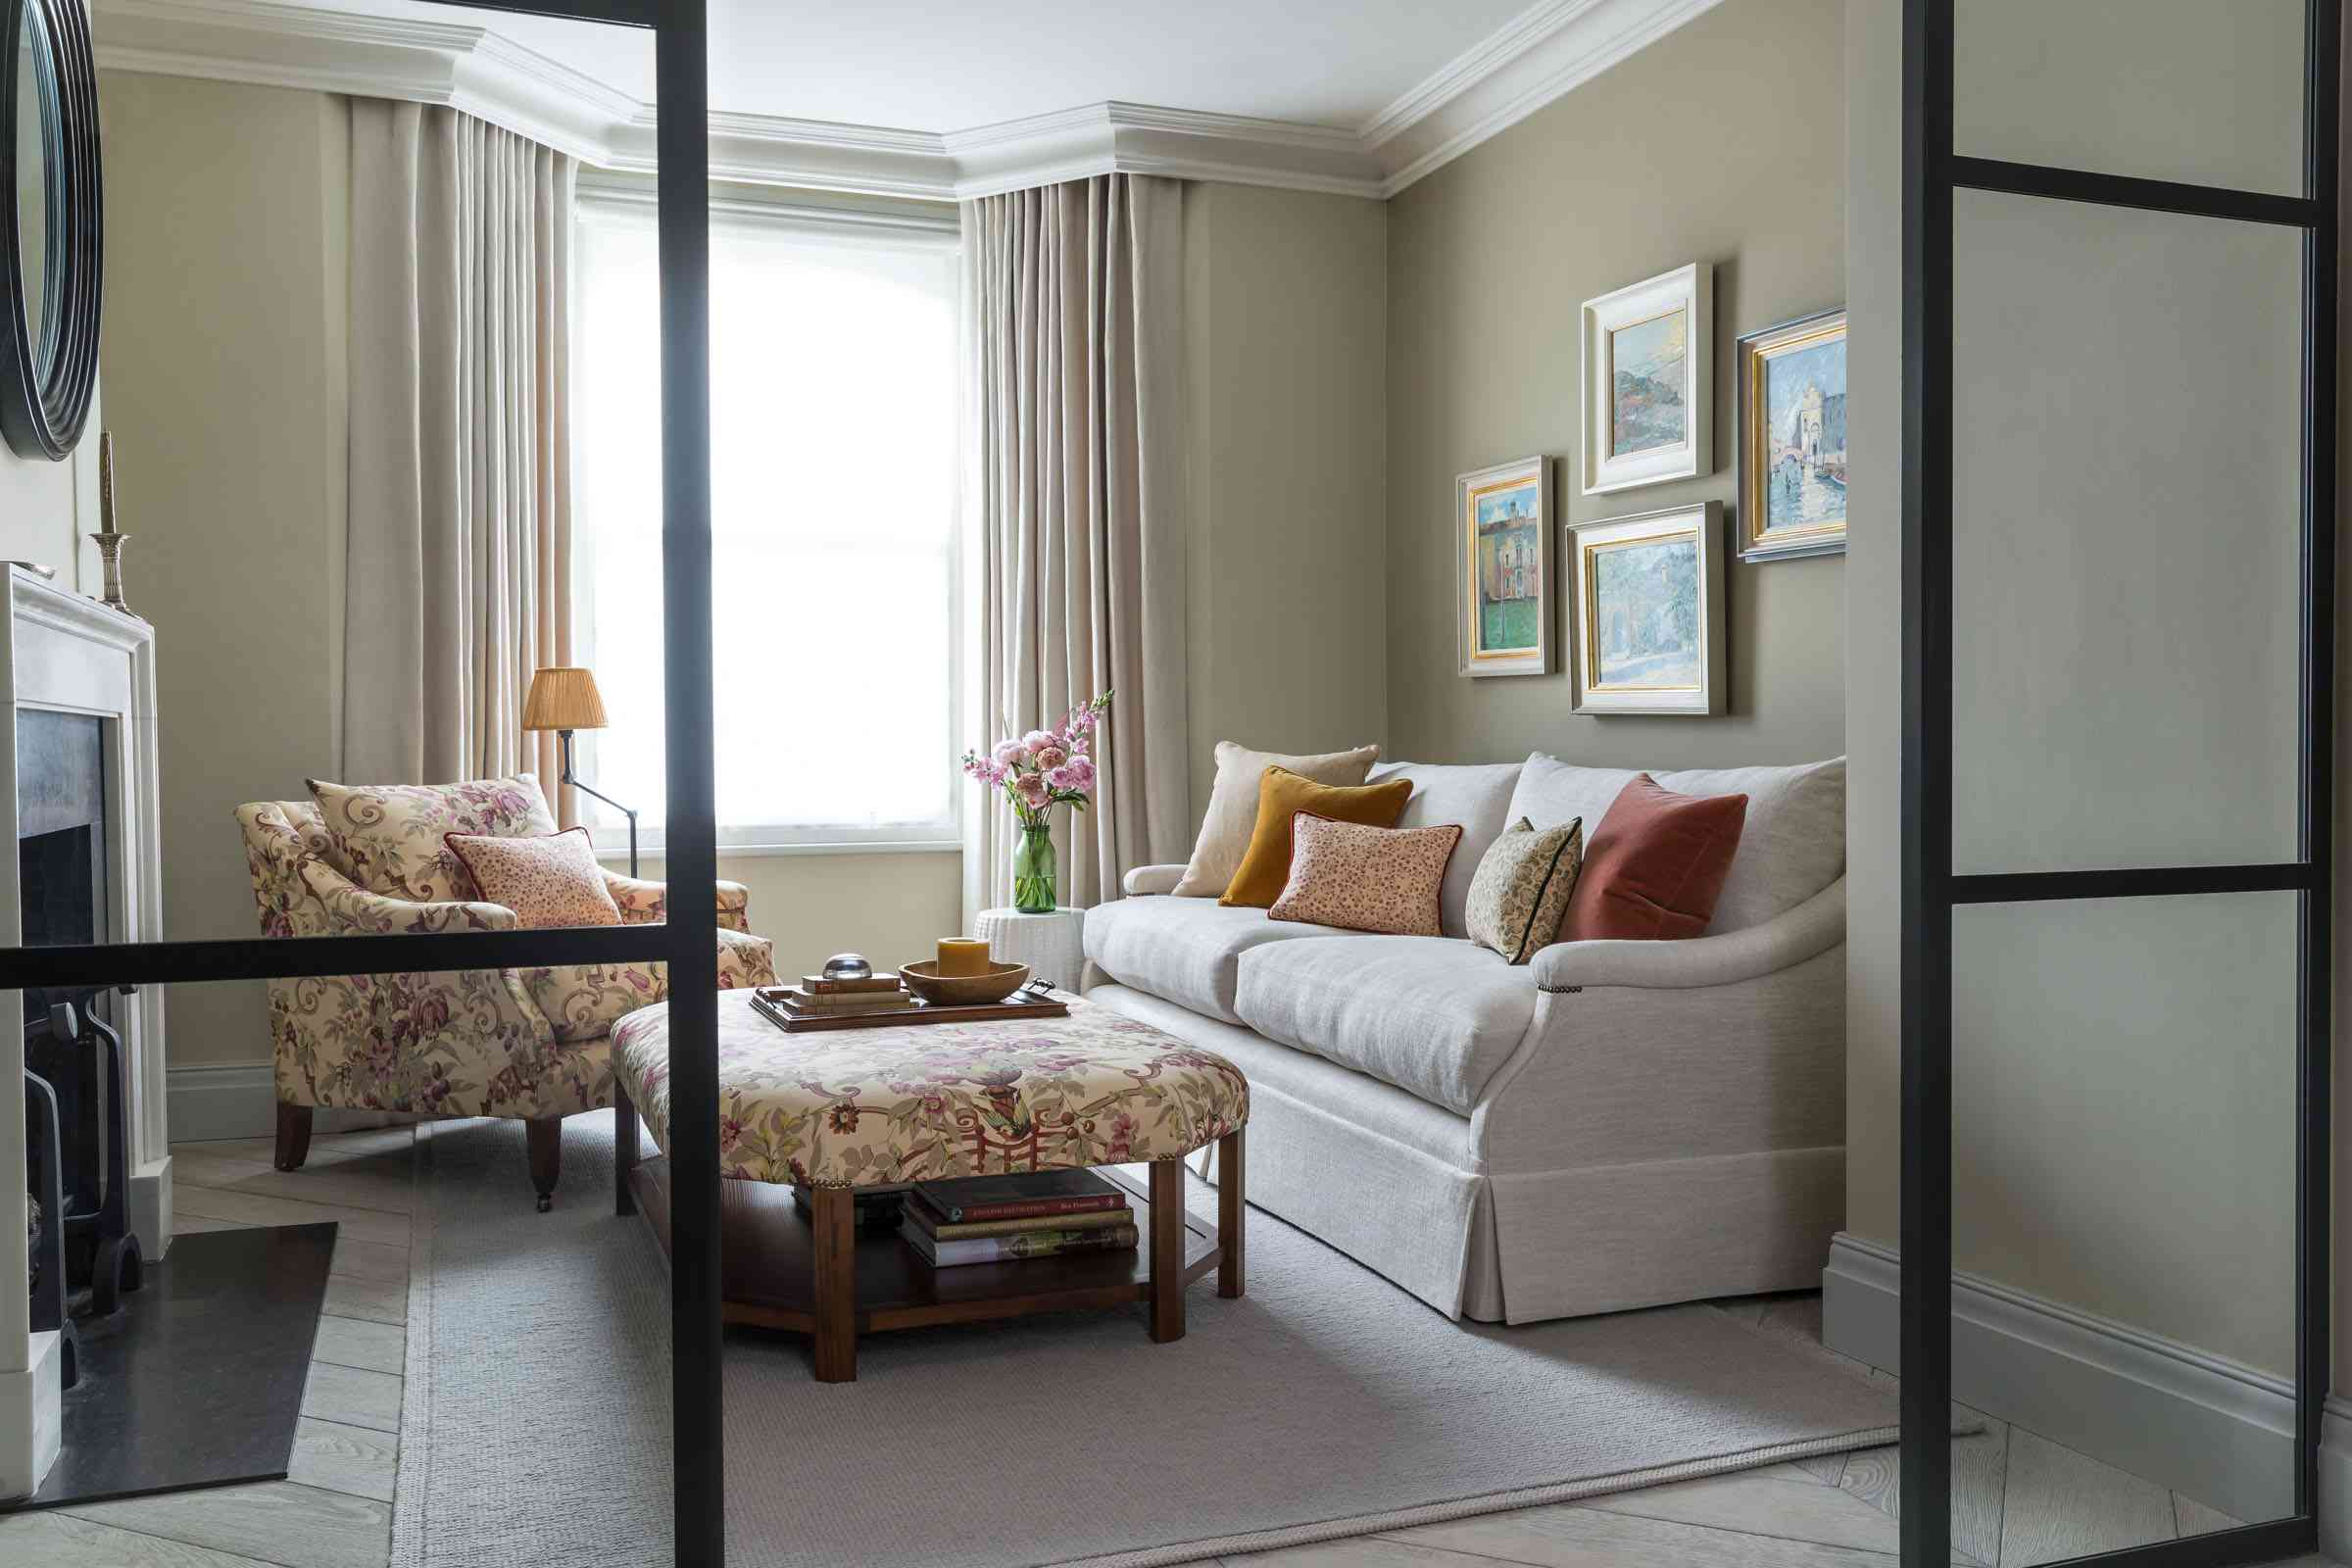 fresh flowers are featured in this autumnal living area